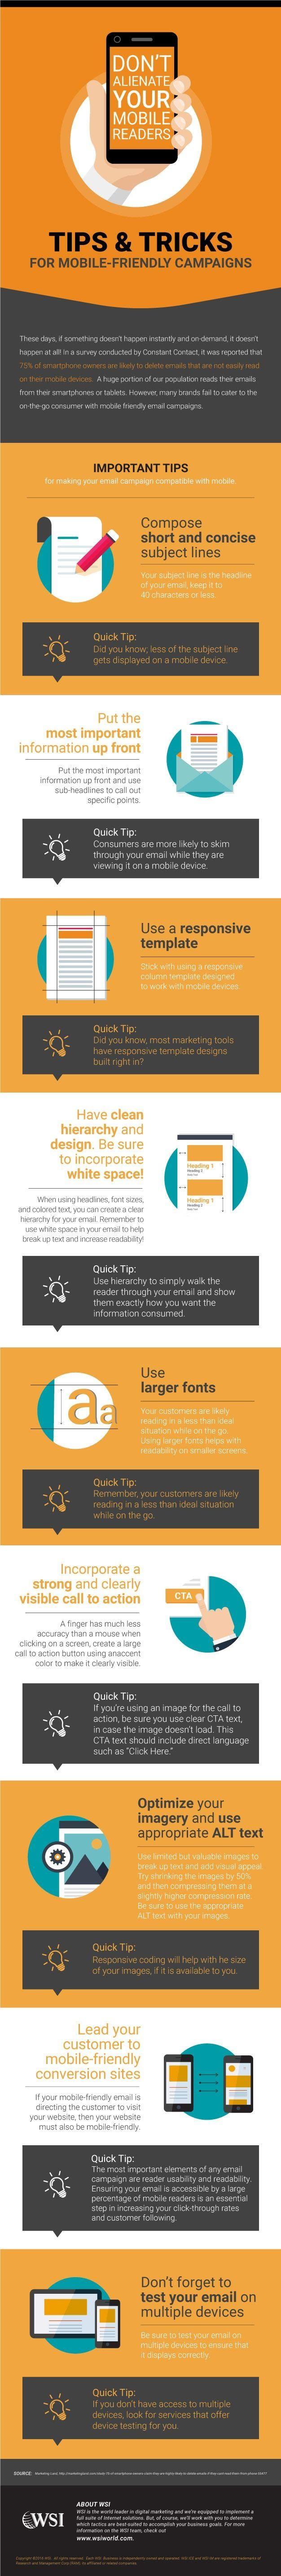 Don't Alienate Your Mobile Readers - #infographic